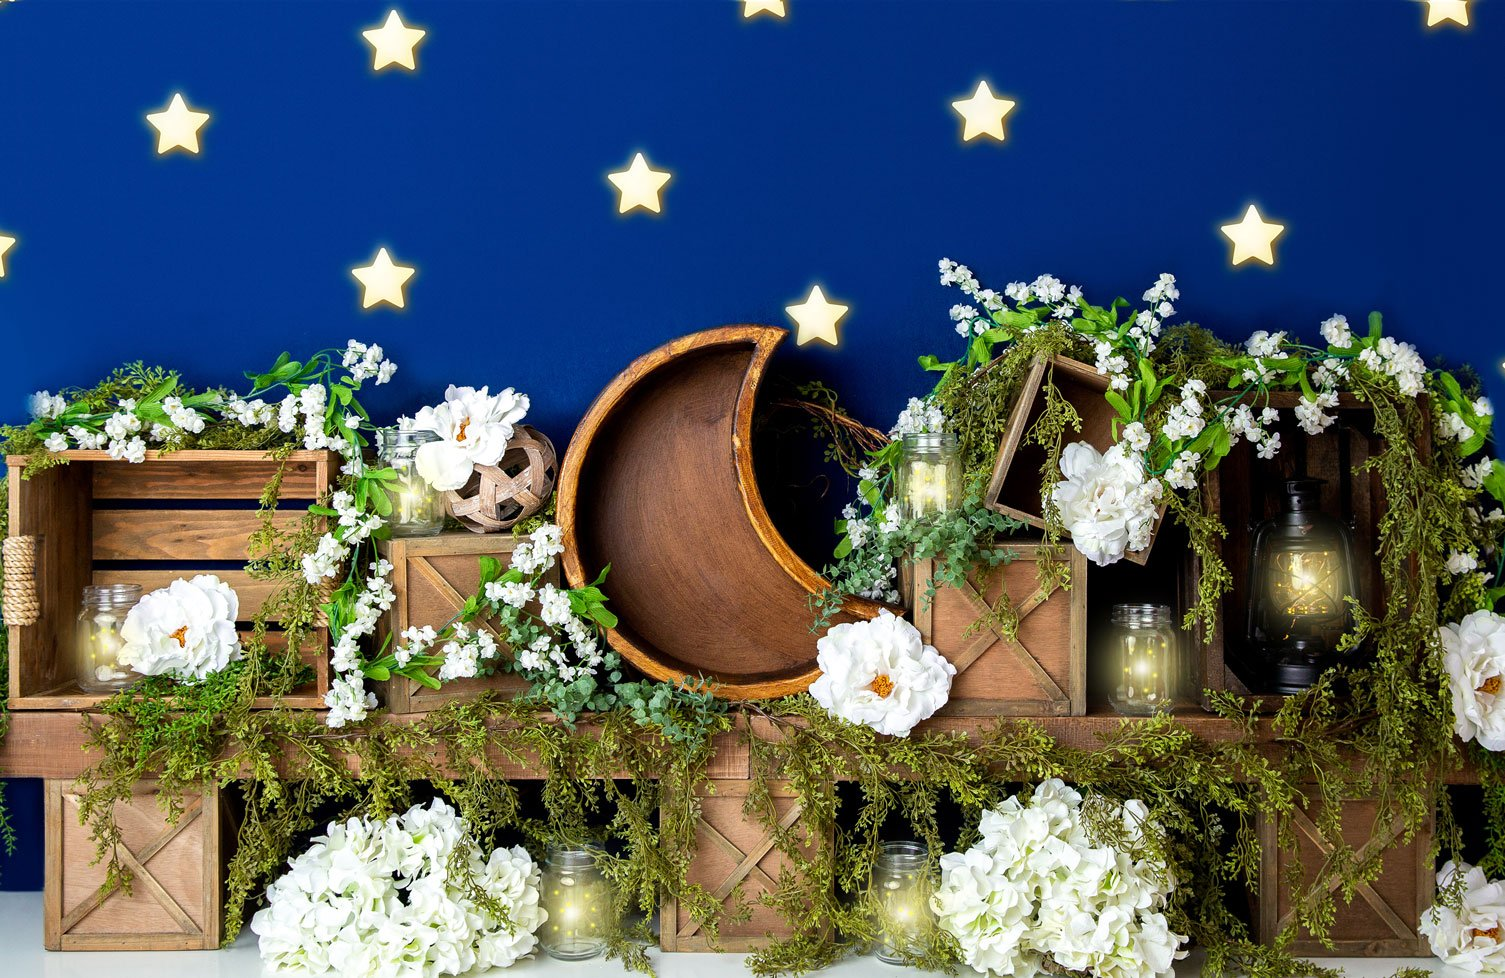 Load image into Gallery viewer, Kate Spring White Flowers Moon Blue Stars Backdrop Designed By Megan Leigh Photography